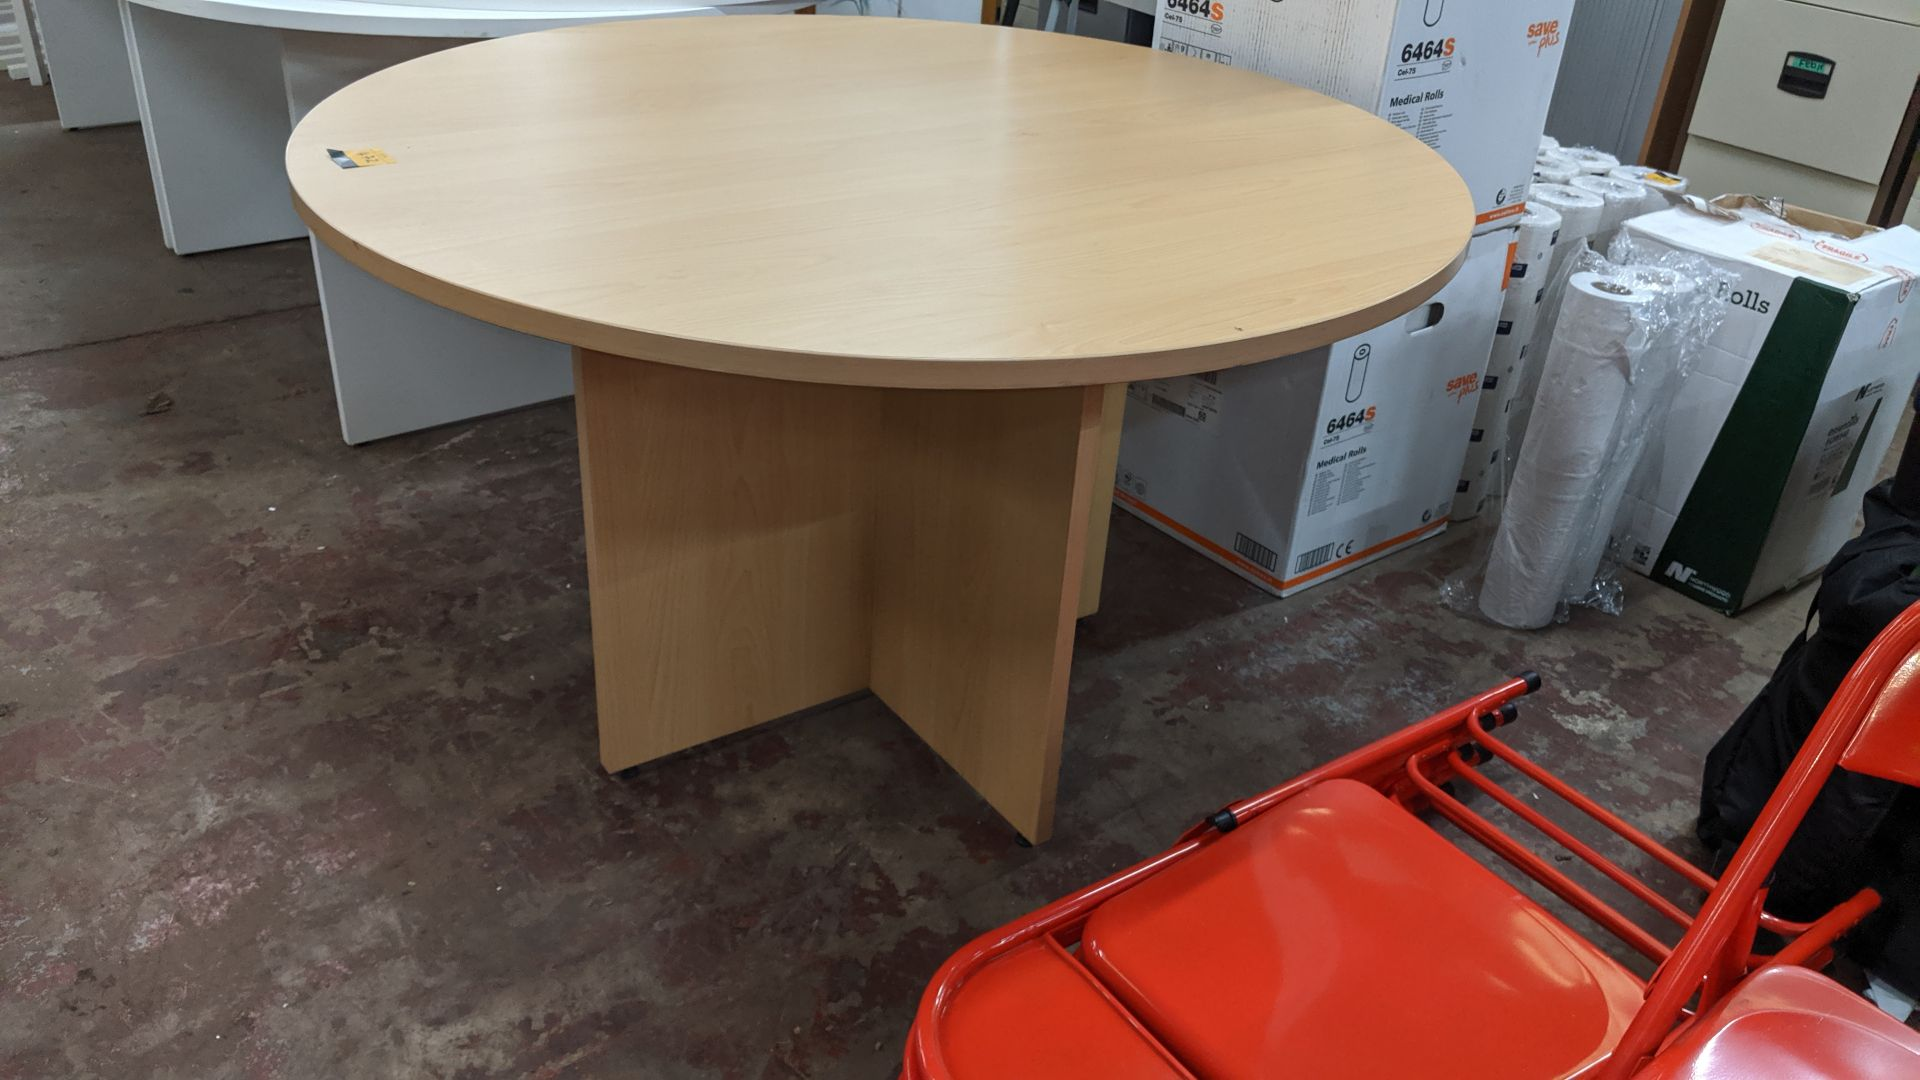 Lot 472 - Round wooden meeting table. This is one of a large number of lots used/owned by One To One (North